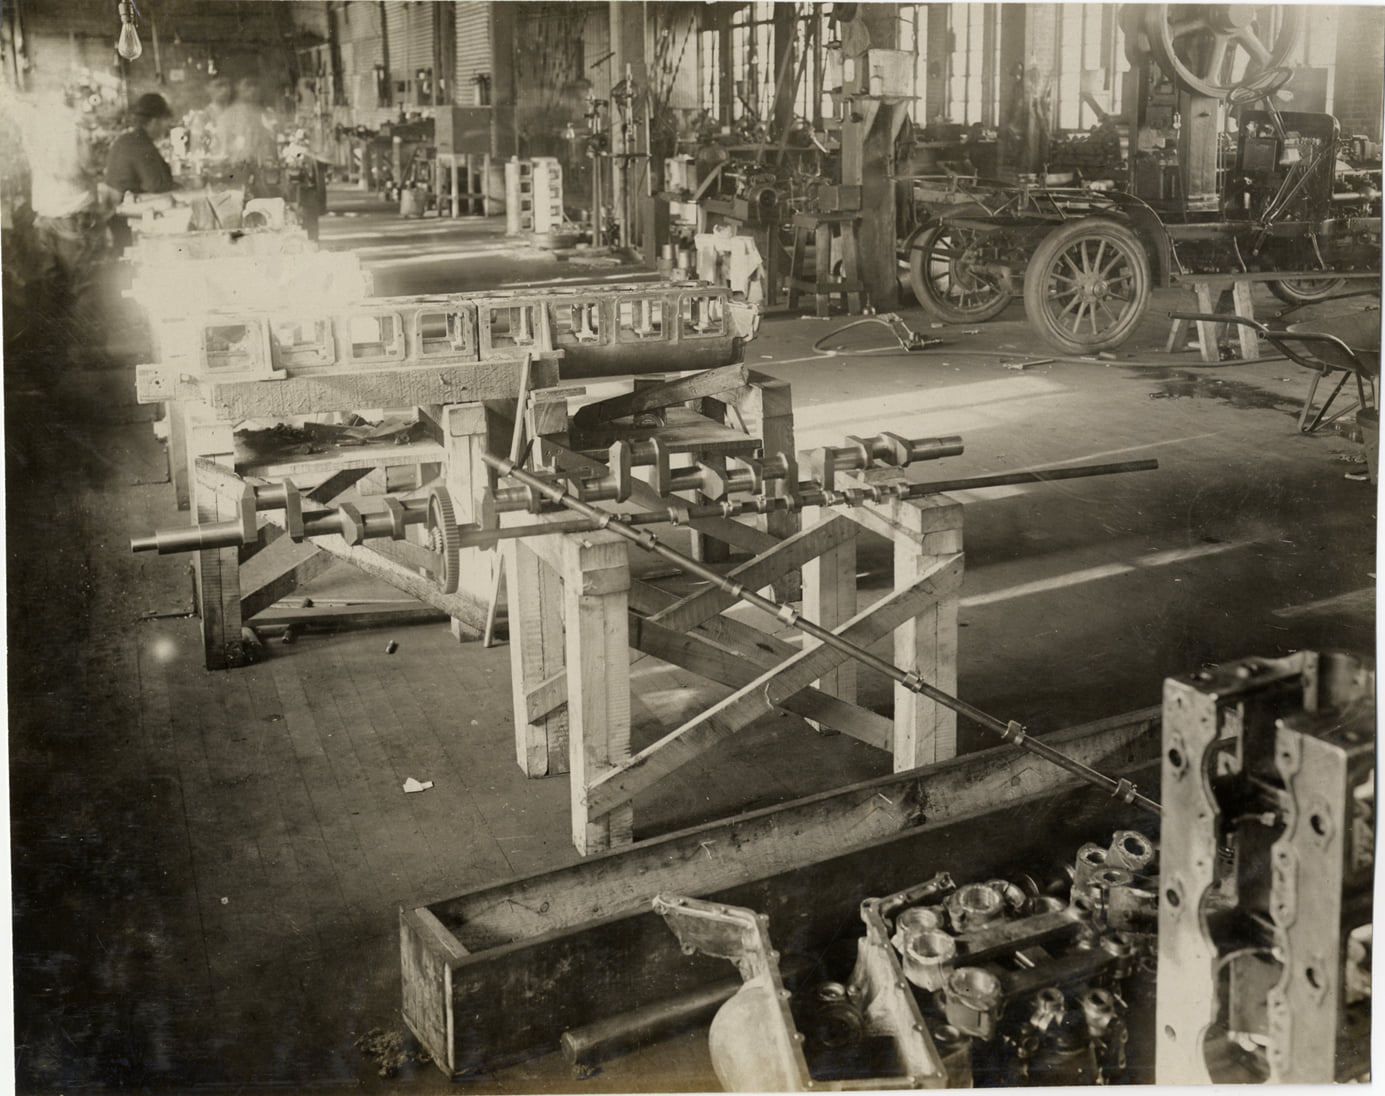 Jackson Auto factory in period